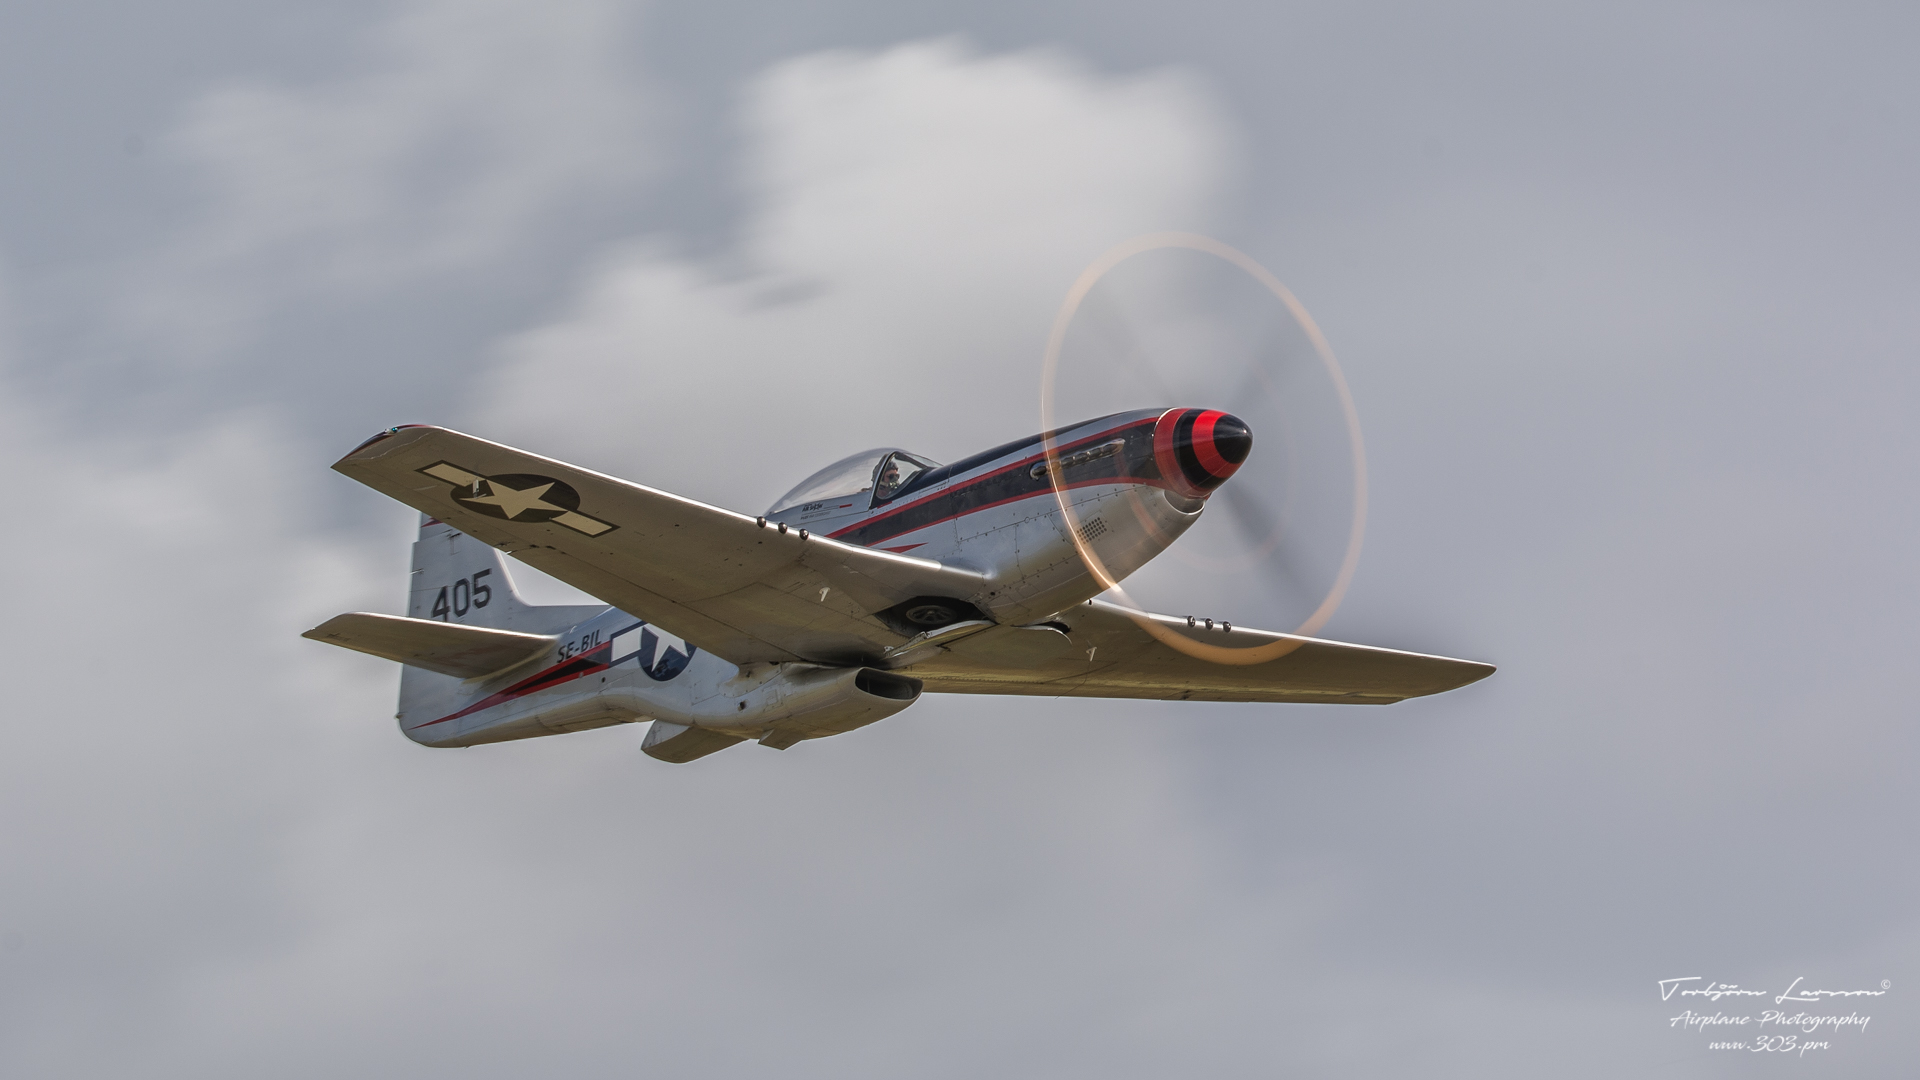 TBE_9155-North Amercian P-51D Mustang